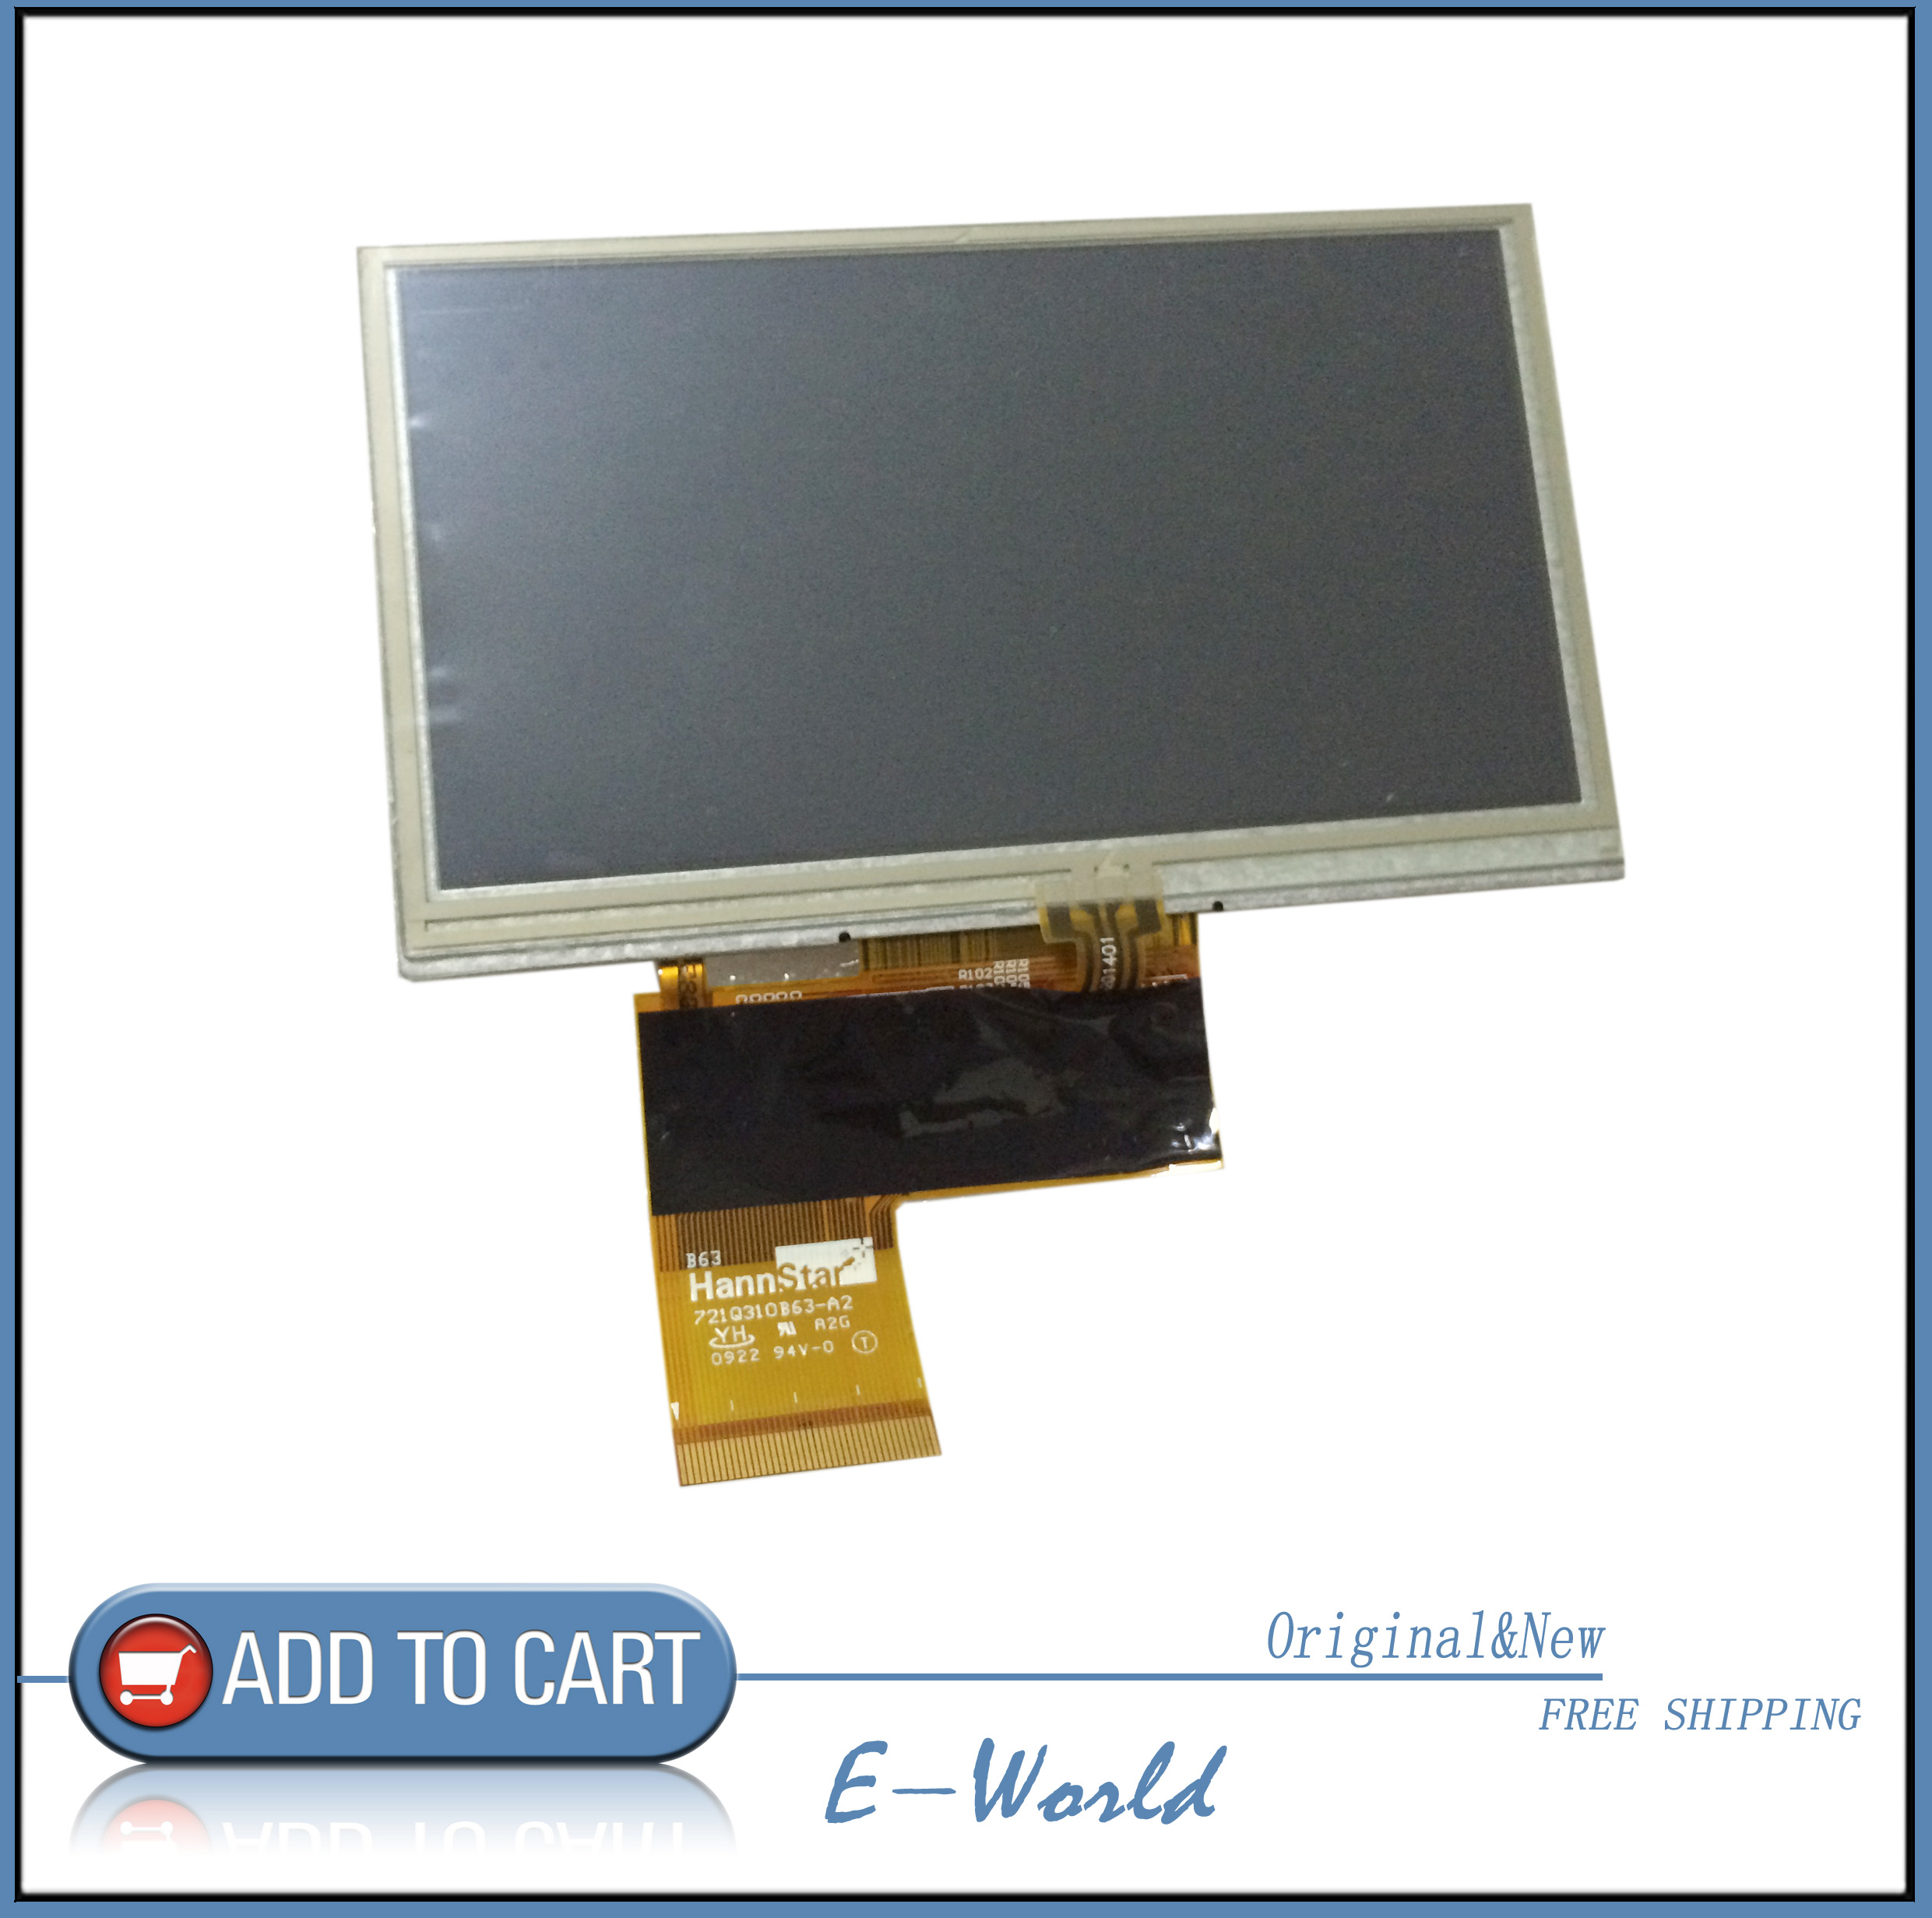 5 LCD screen display with touch screen for  KORG PA300 free shipping5 LCD screen display with touch screen for  KORG PA300 free shipping